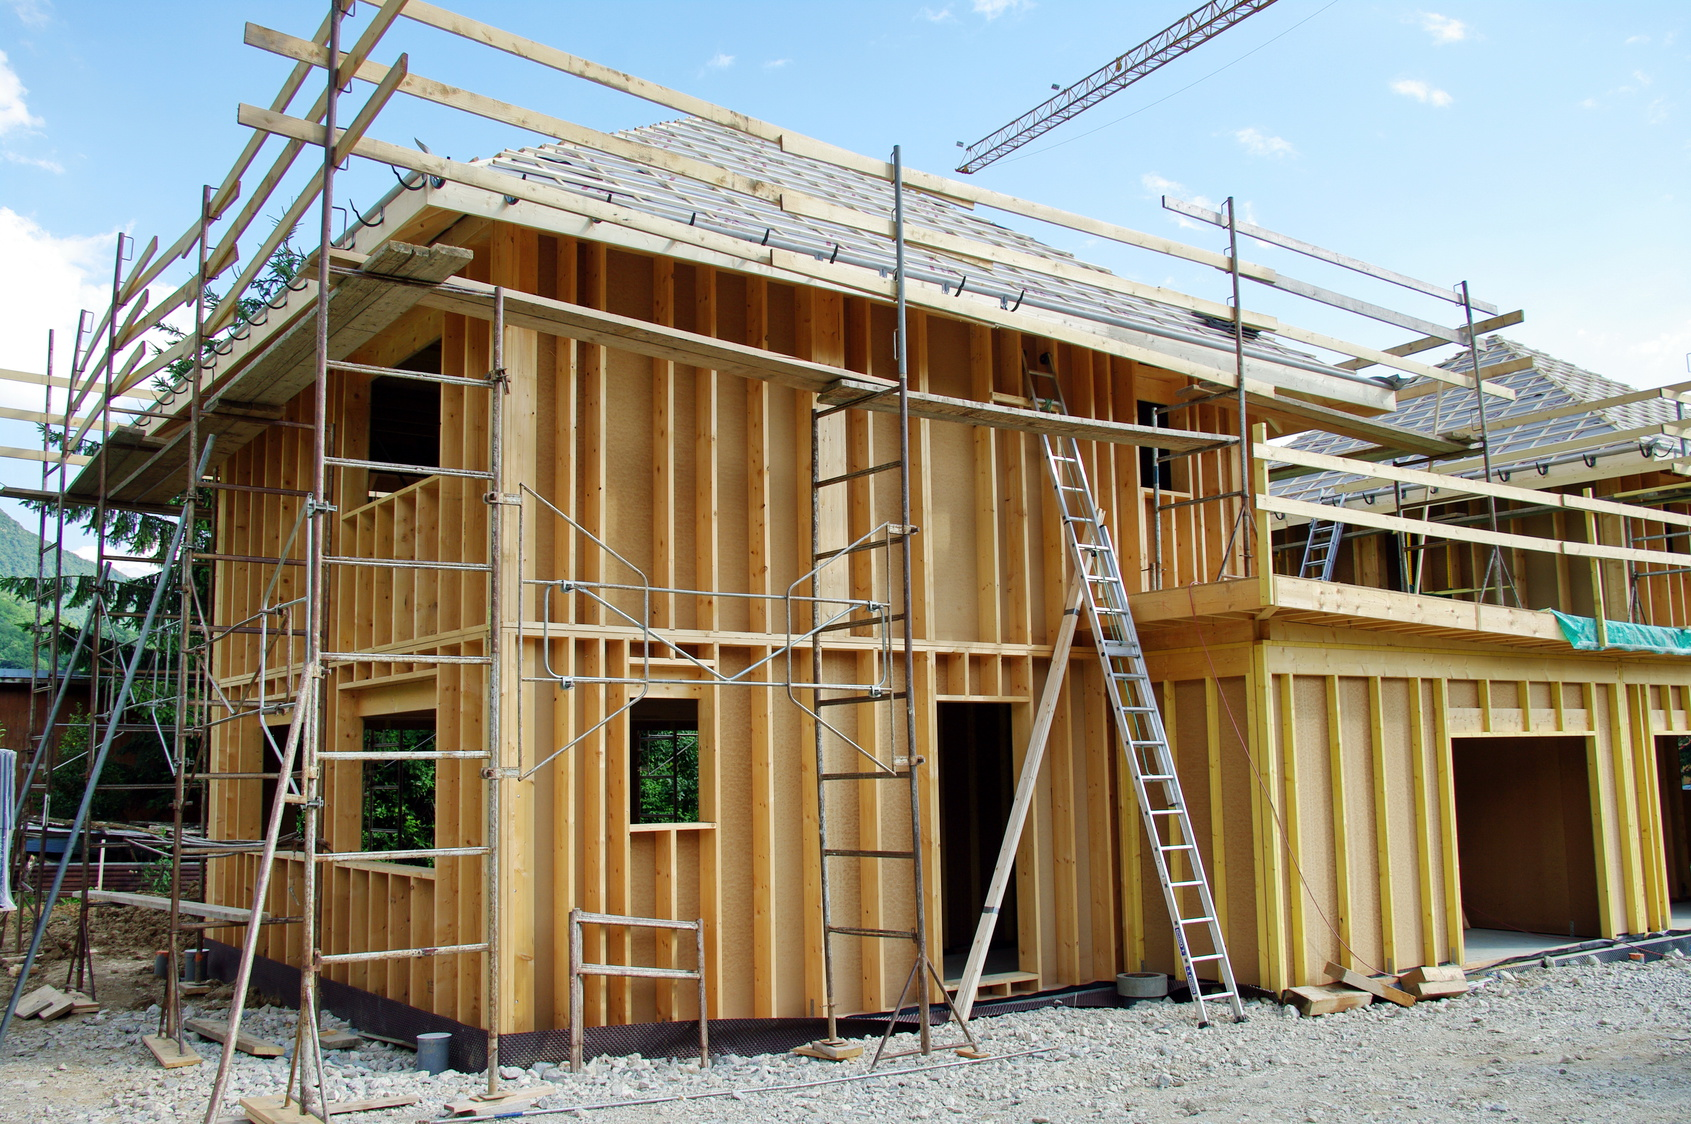 Les tapes de construction d une maison en kit for Construction en bois details